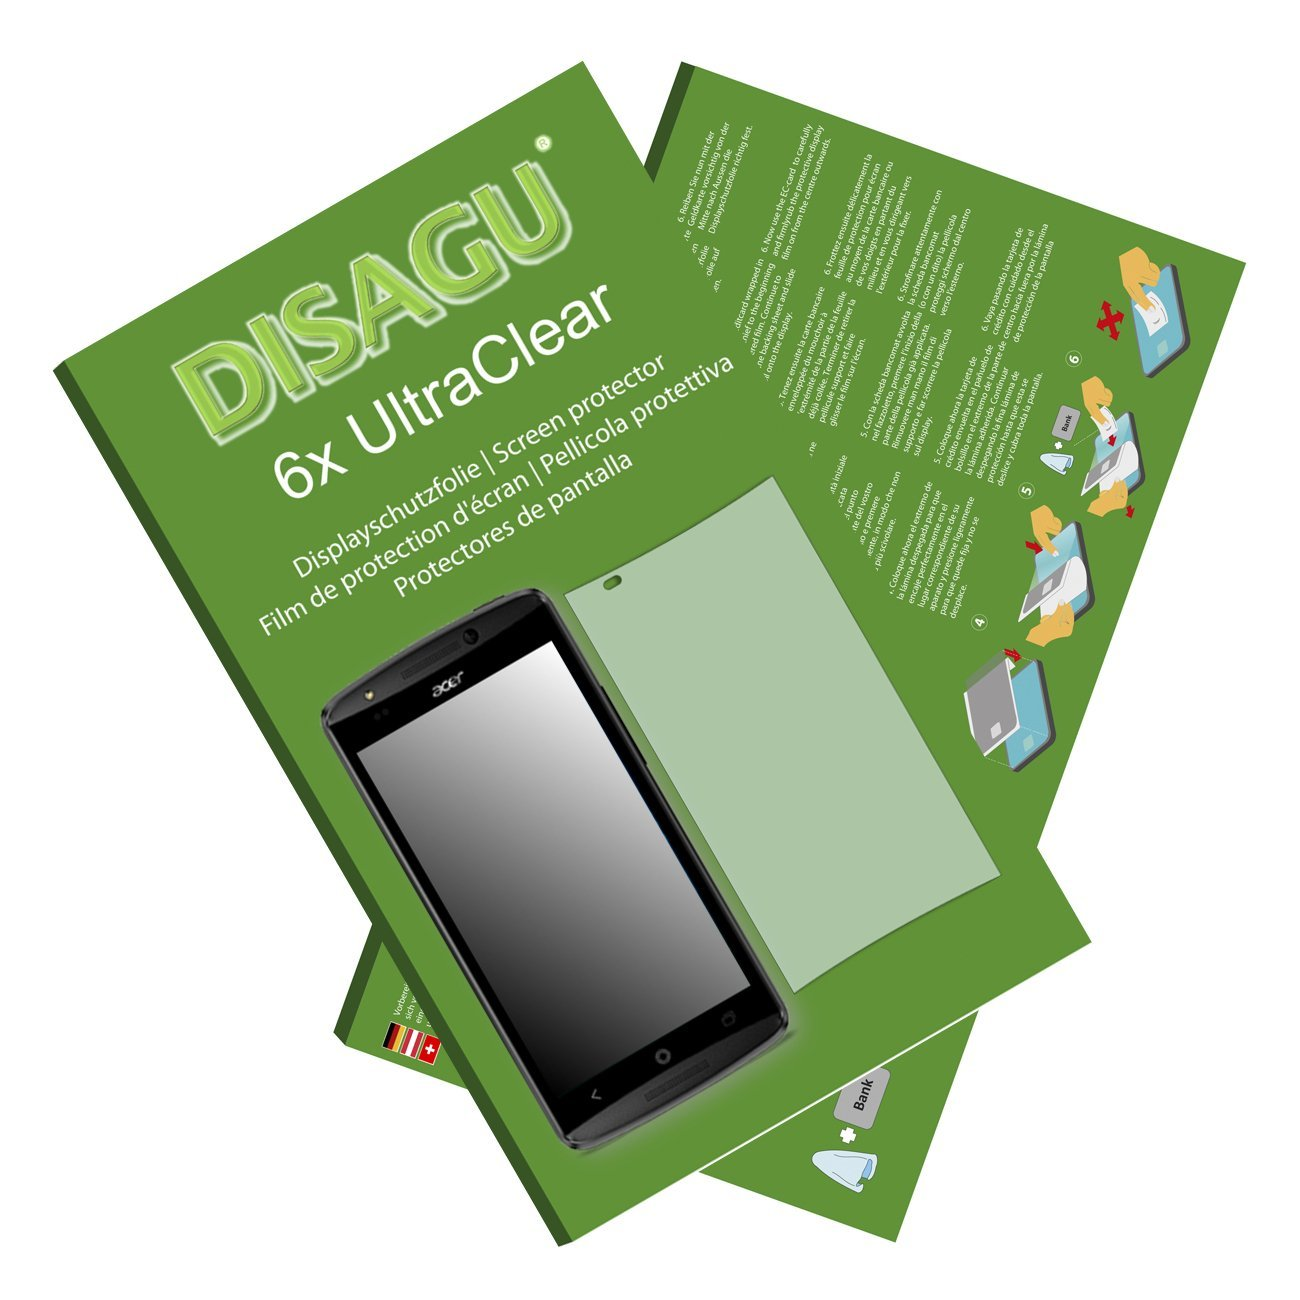 6x Ultra Clear Screen Protector for Acer Liquid E700 Trio